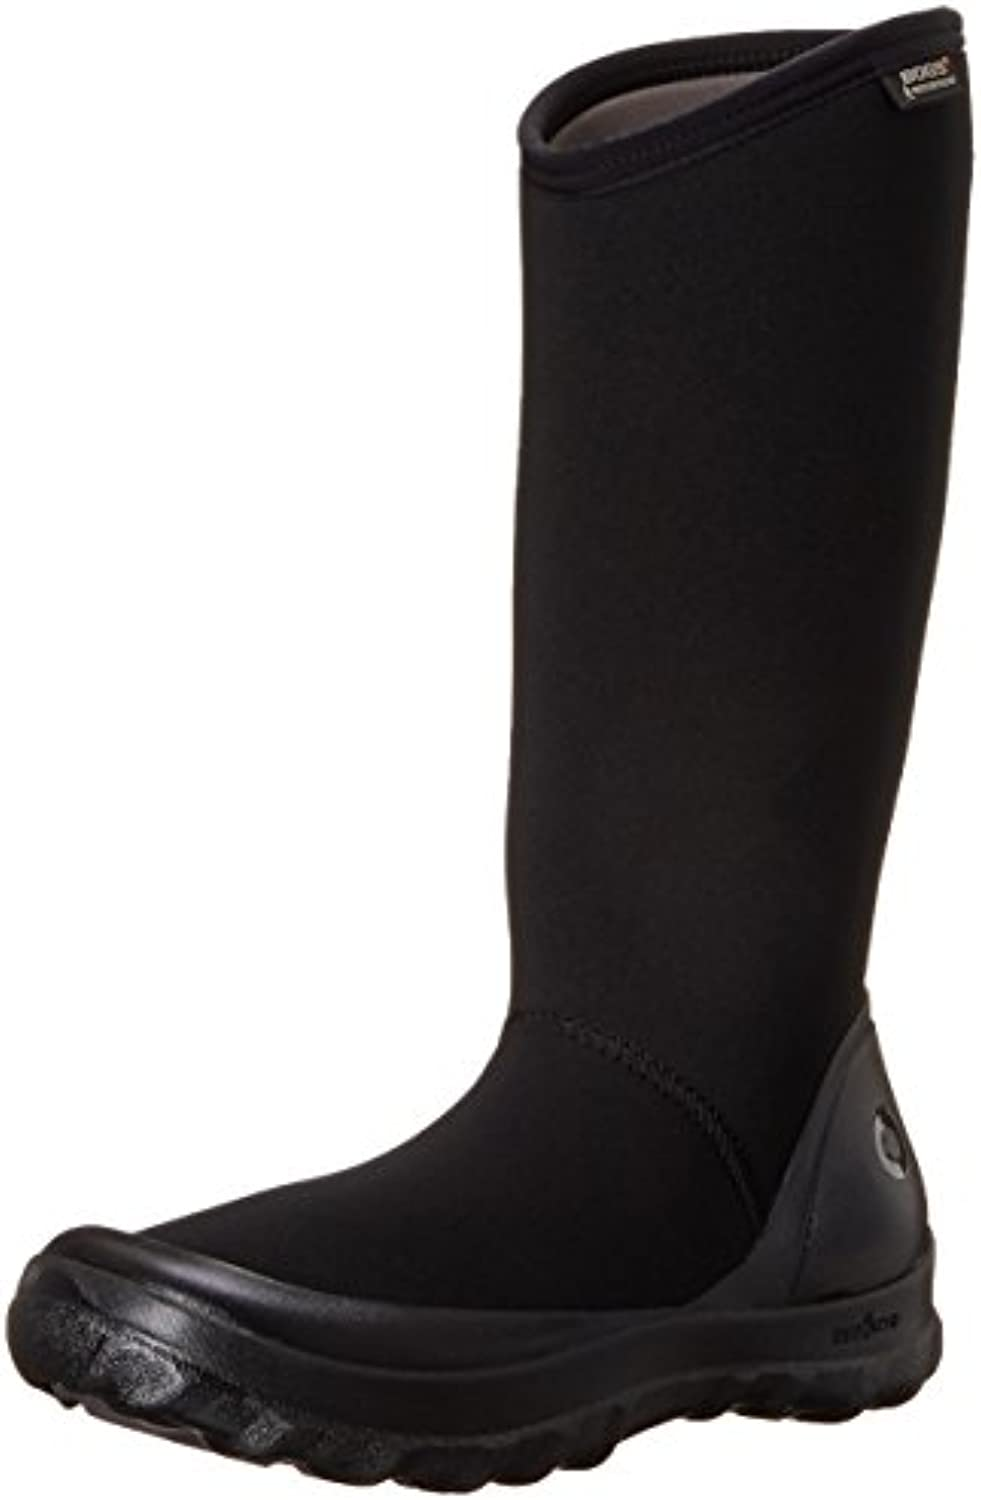 Bogs Ladies Kettering Black Warm Insulated Waterproof Wellington Boots 71772-UK5 (EU38)